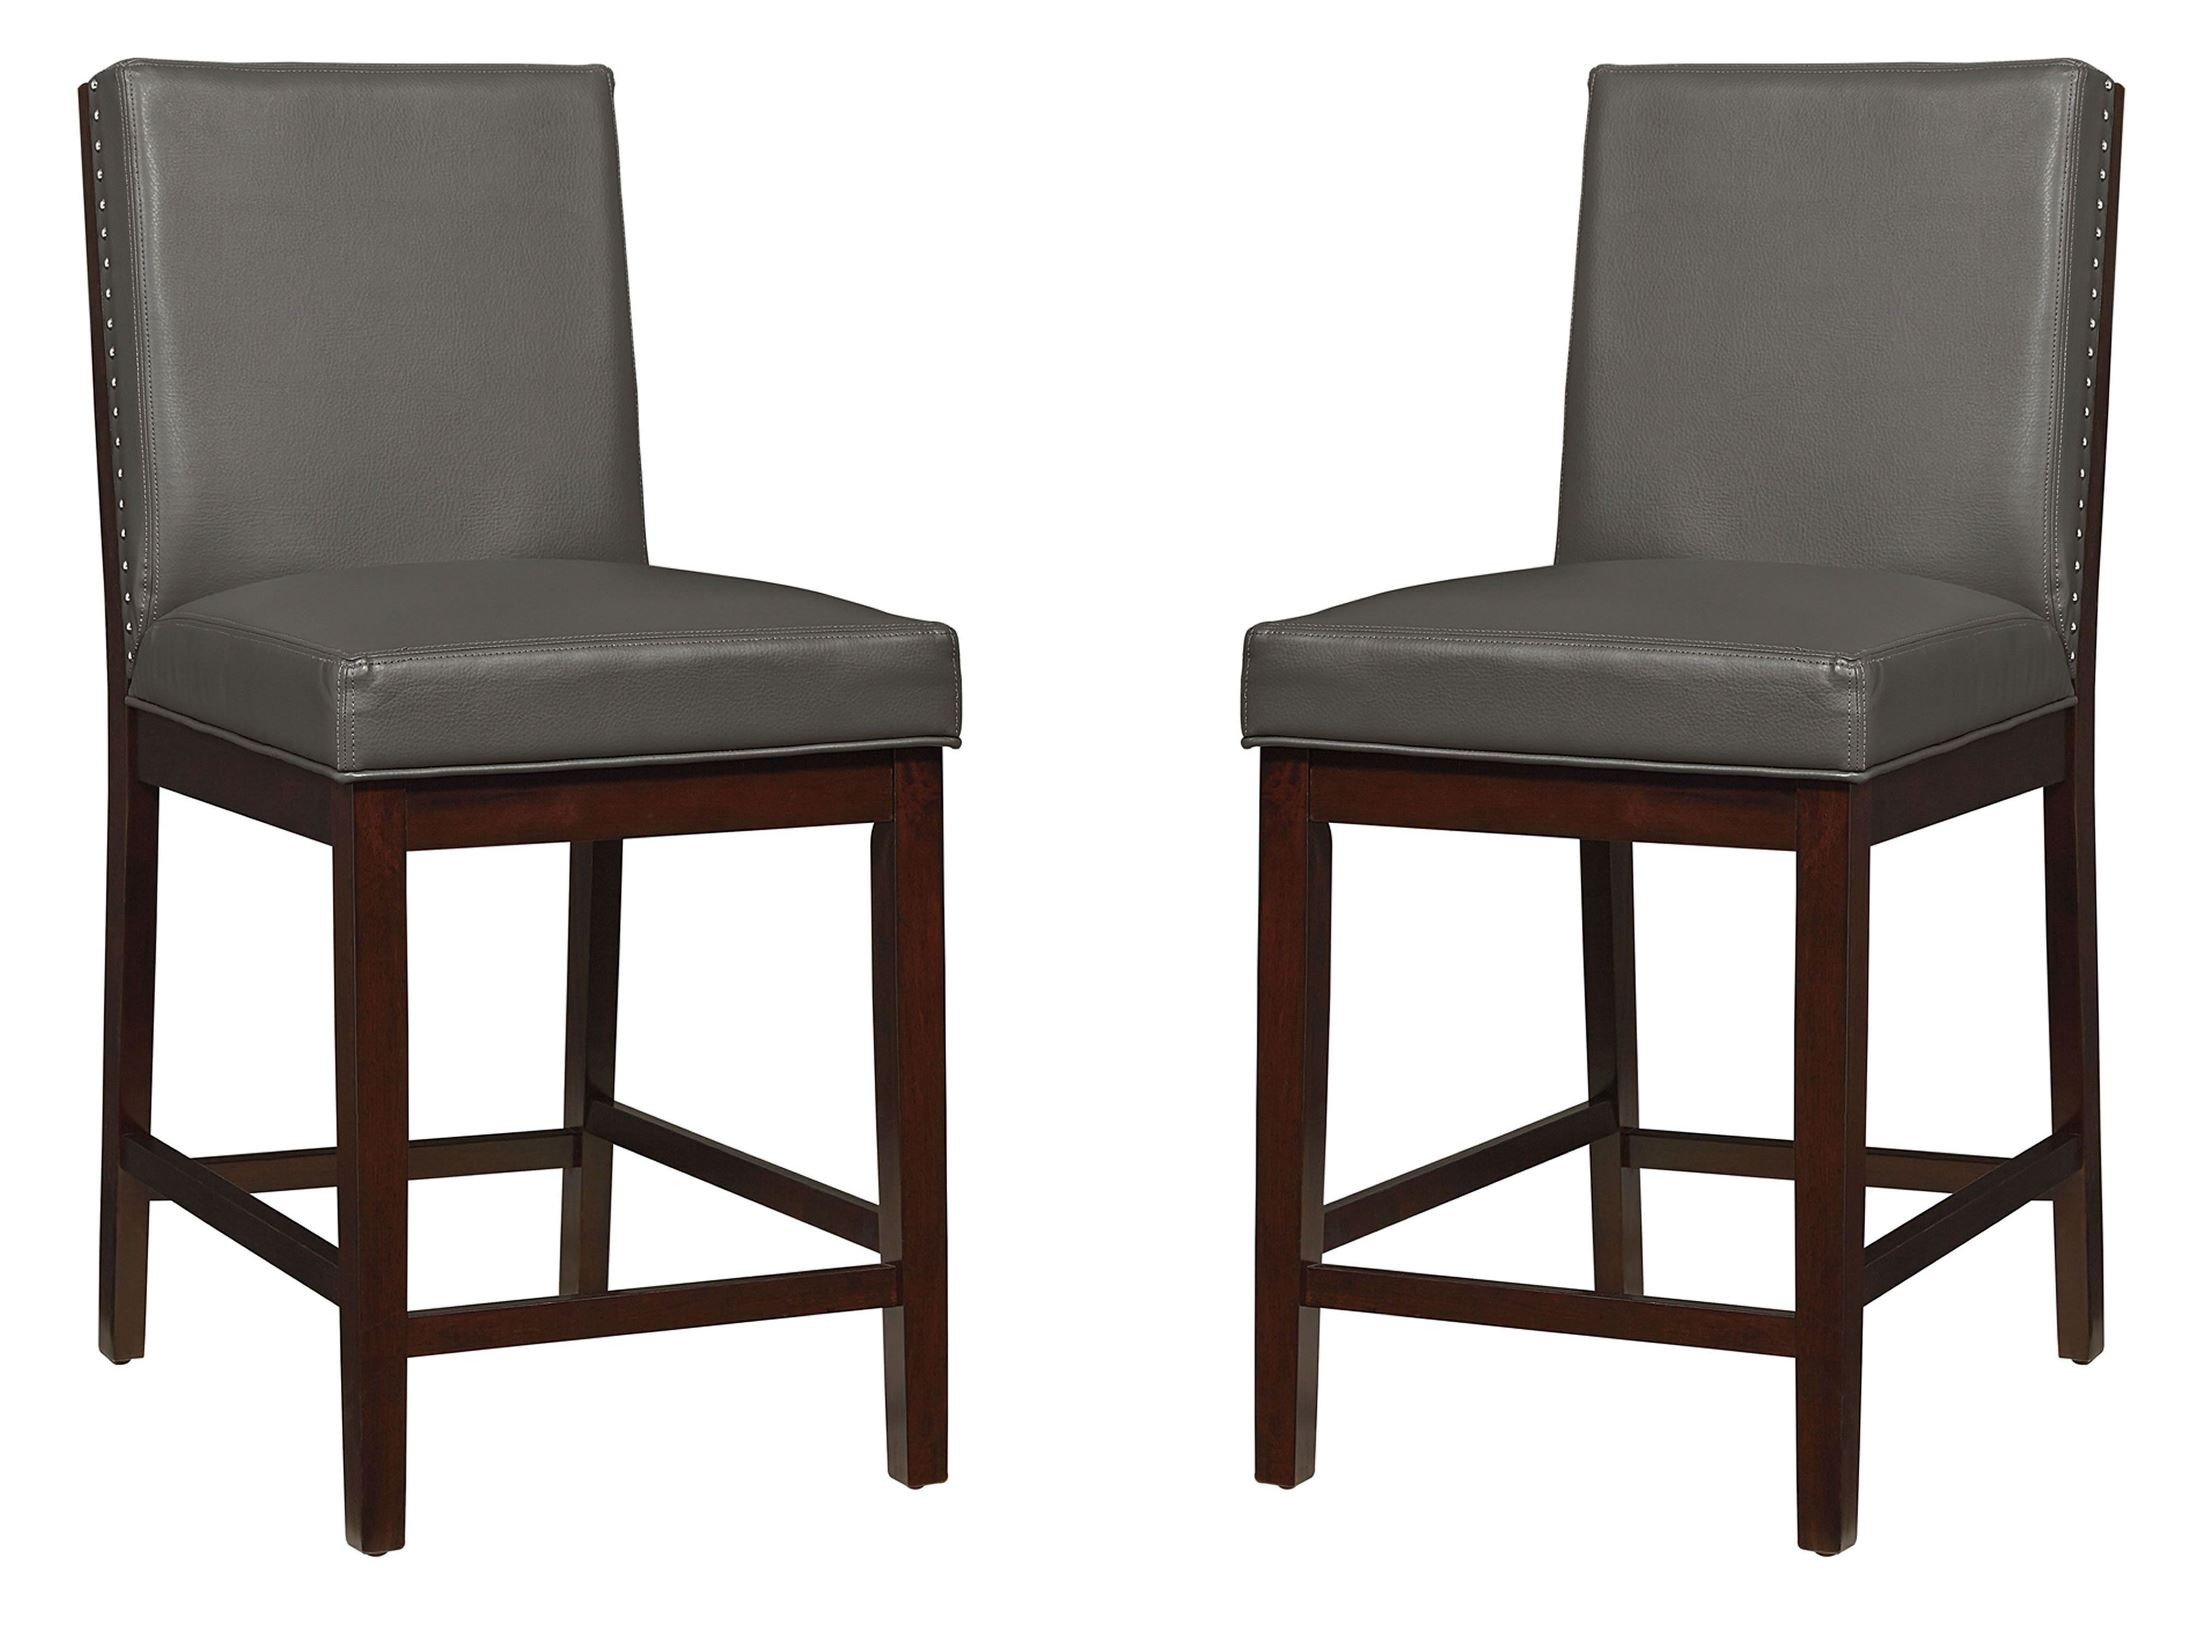 Couture Elegance Gray Upholstered Counter Height Chair Set of 2 from ...